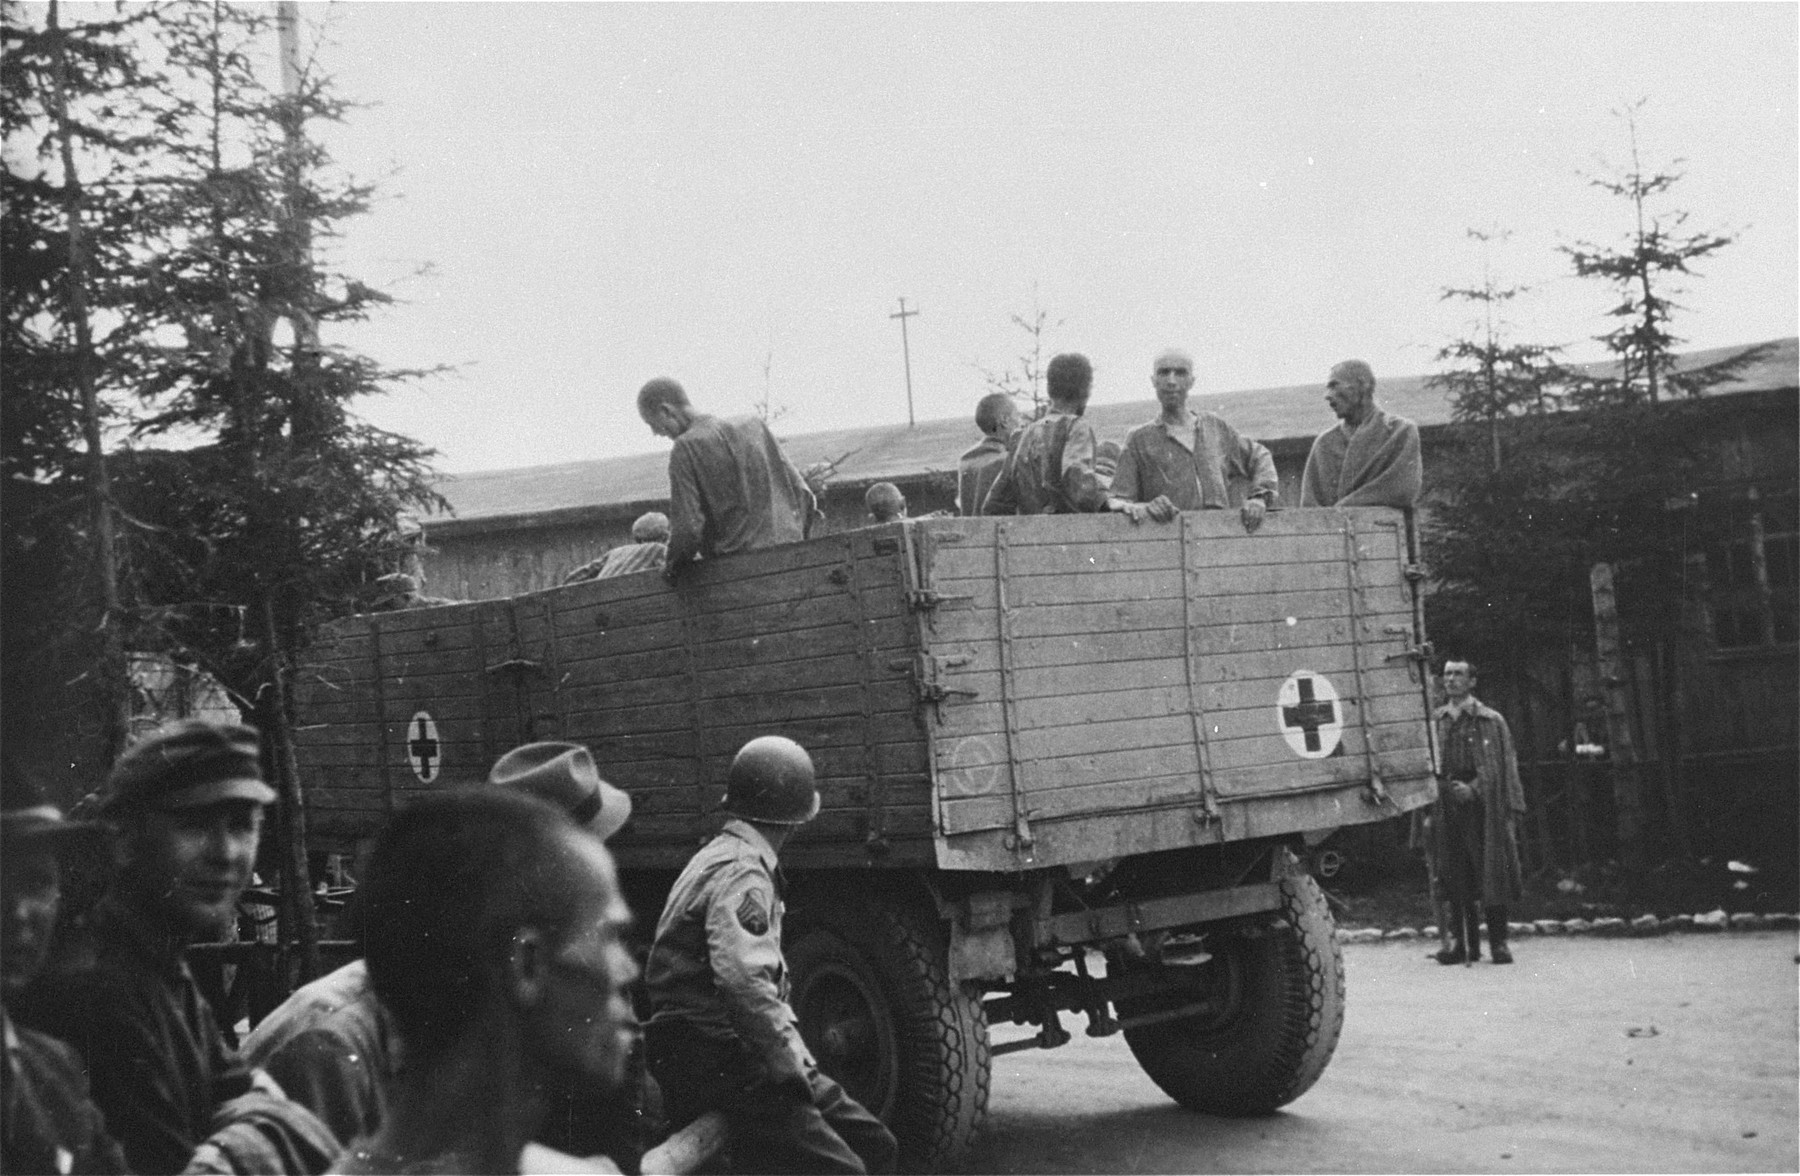 Evacuating survivors from Ebensee to the 139th Evacuation Hospital for medical care.